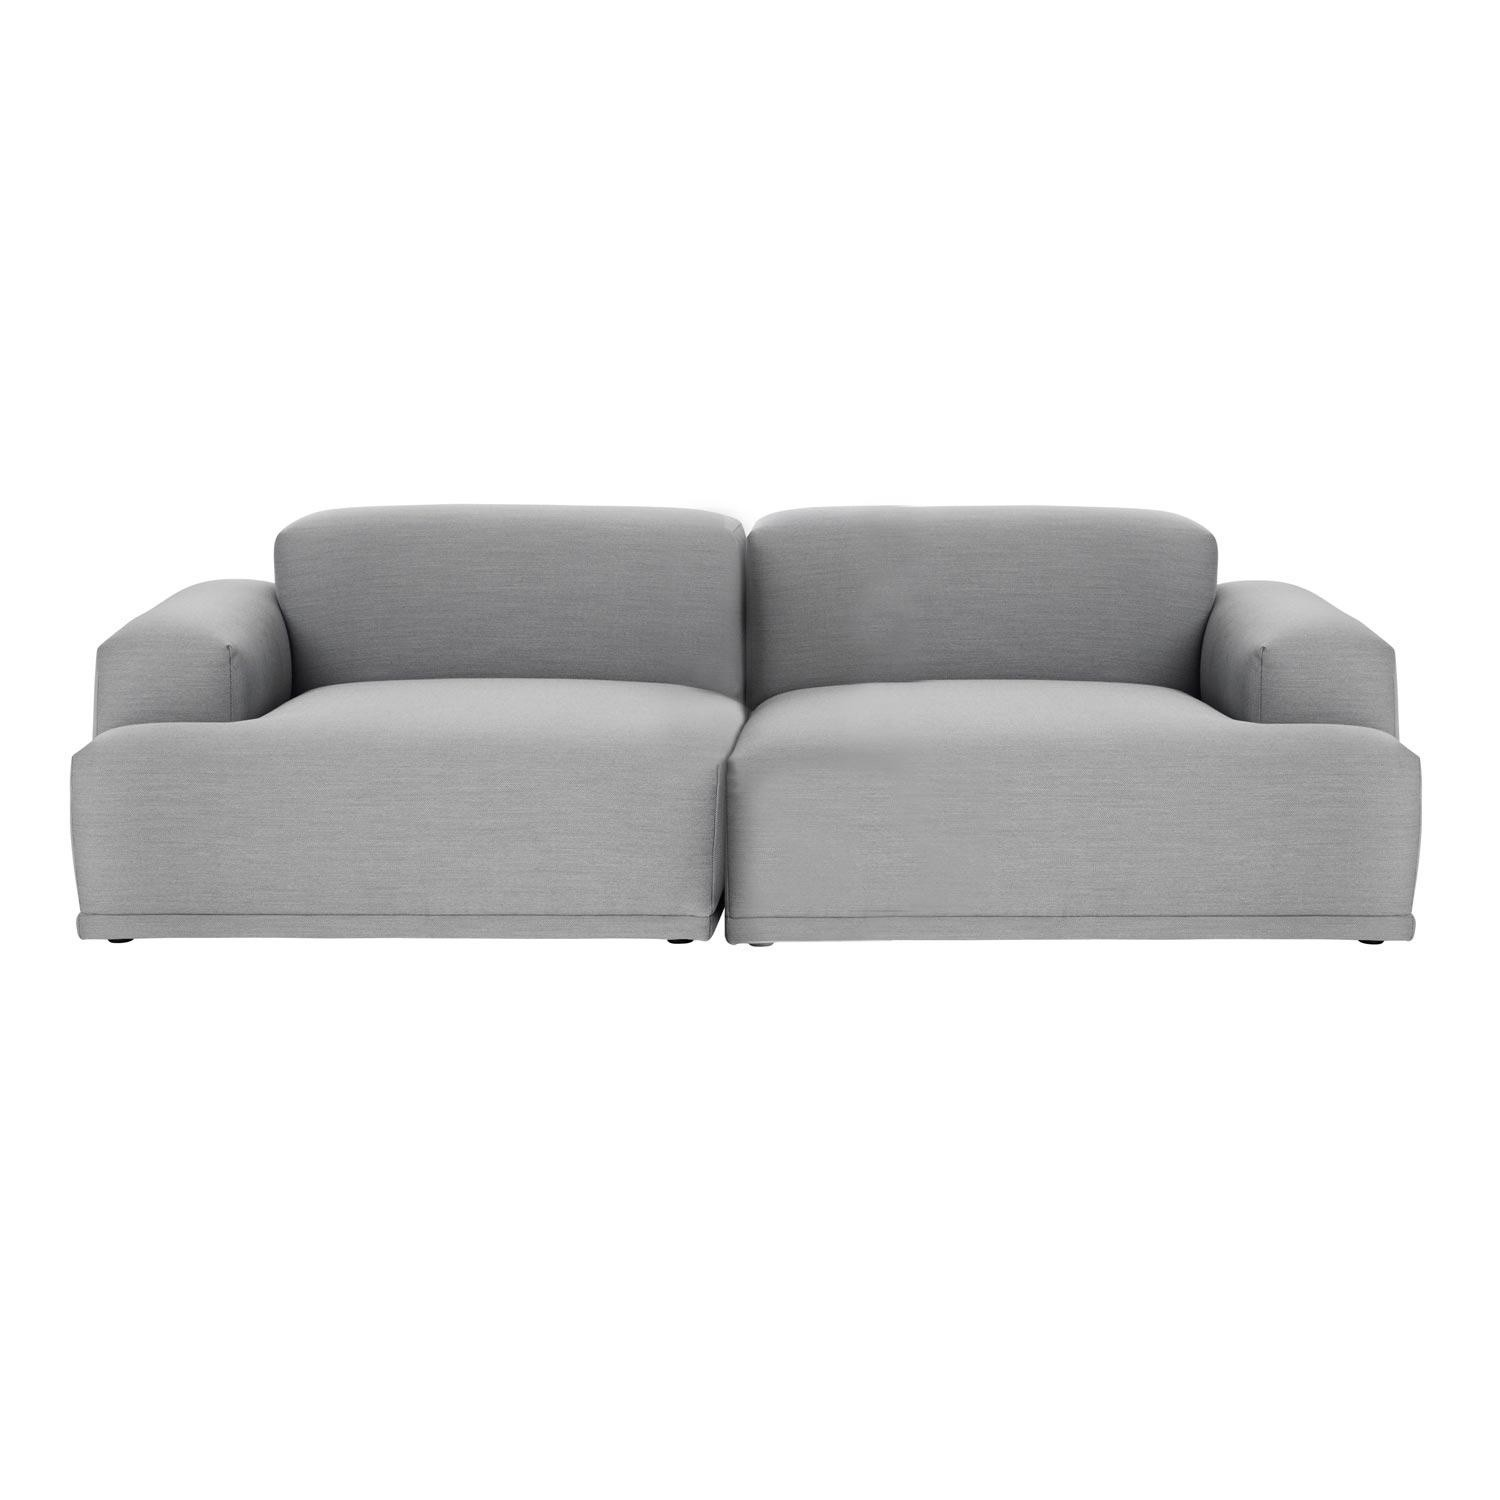 muuto connect lounge 2 sitzer sofa ambientedirect. Black Bedroom Furniture Sets. Home Design Ideas